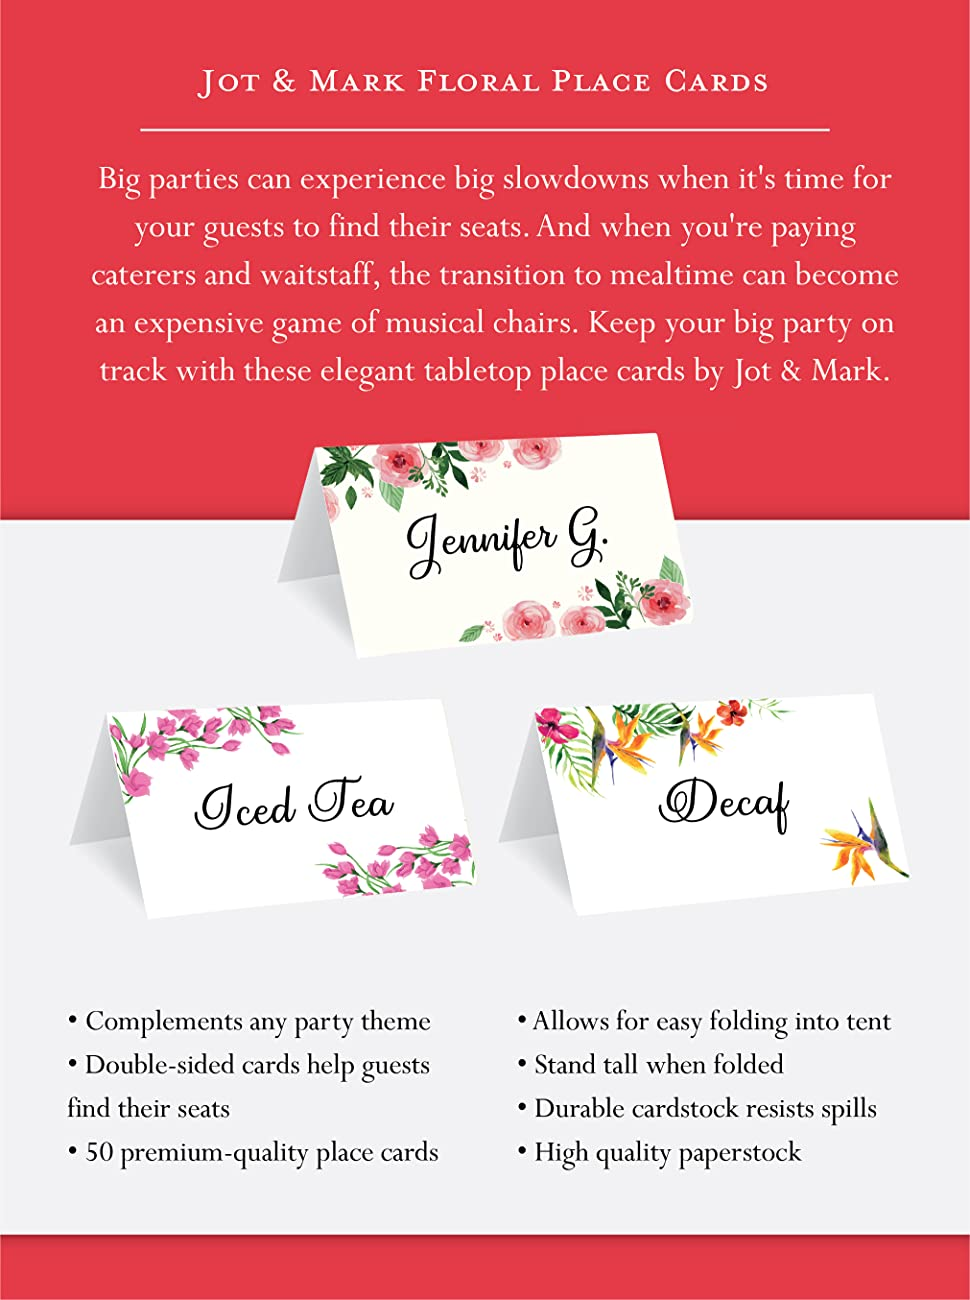 Amazon.com: Jot & Mark Place Cards Floral 50 Count (Pink Peonies ...